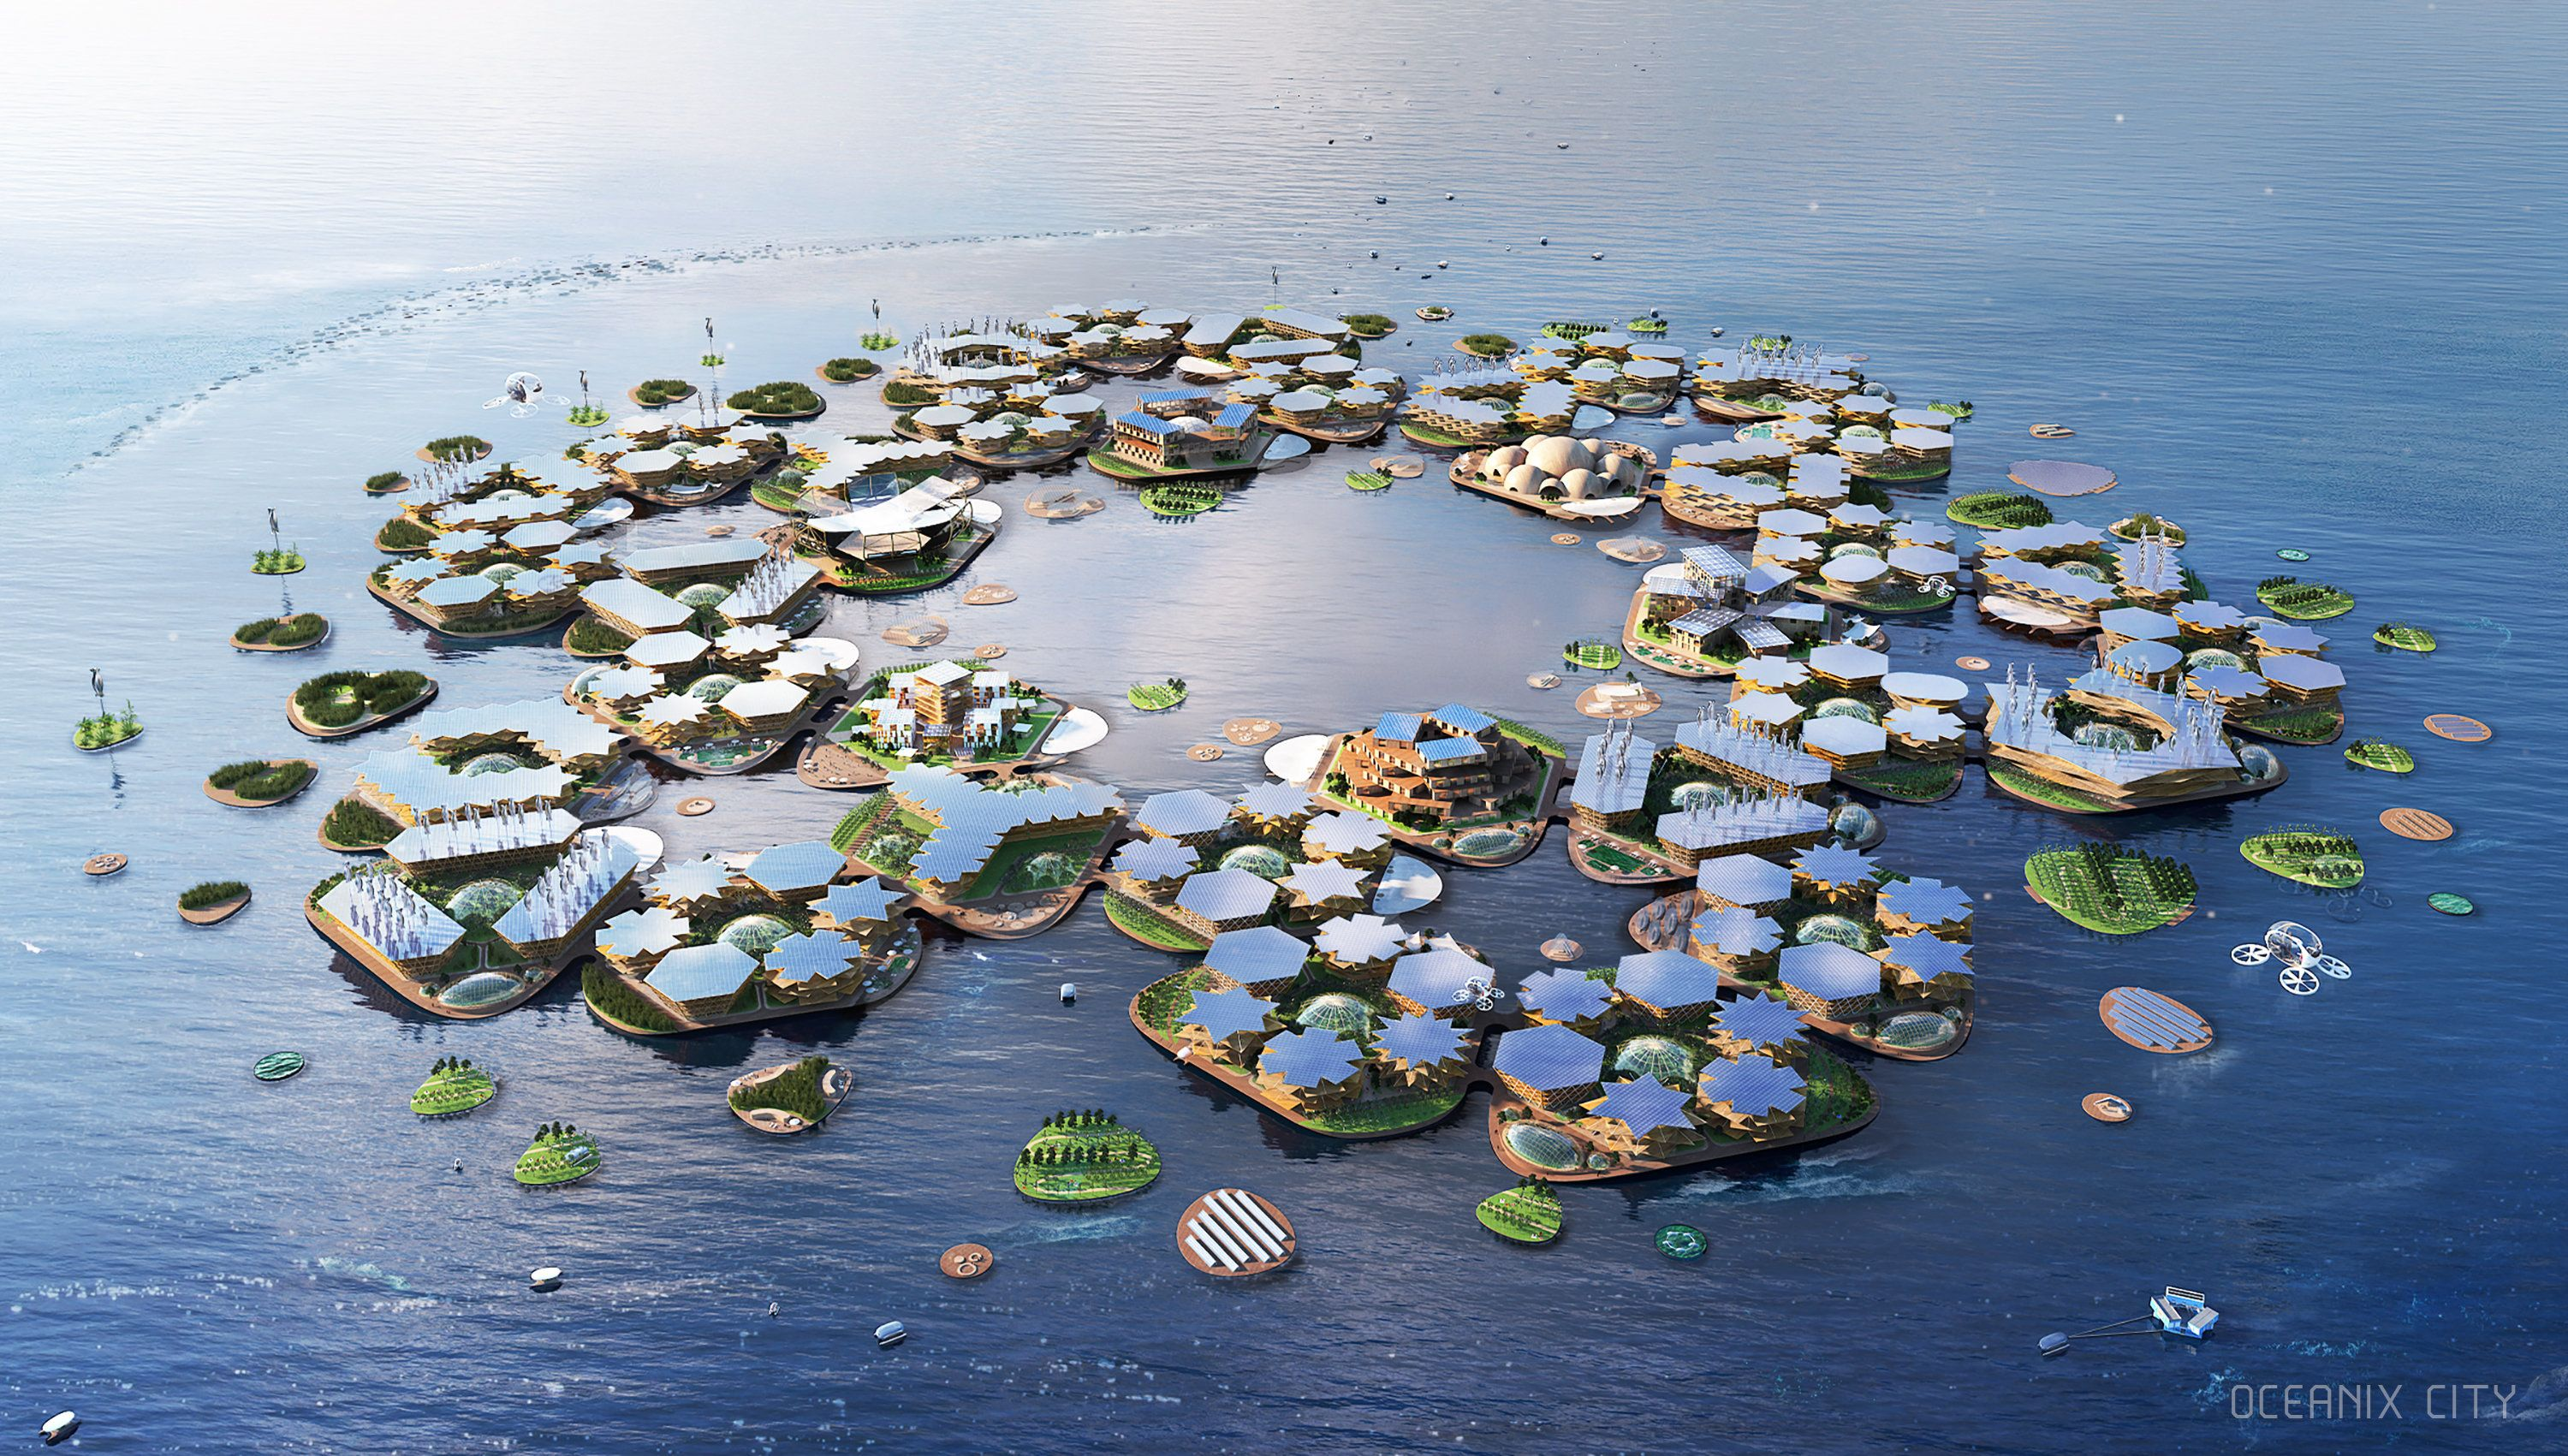 An illustration of what Oceanix's floating city would look like.